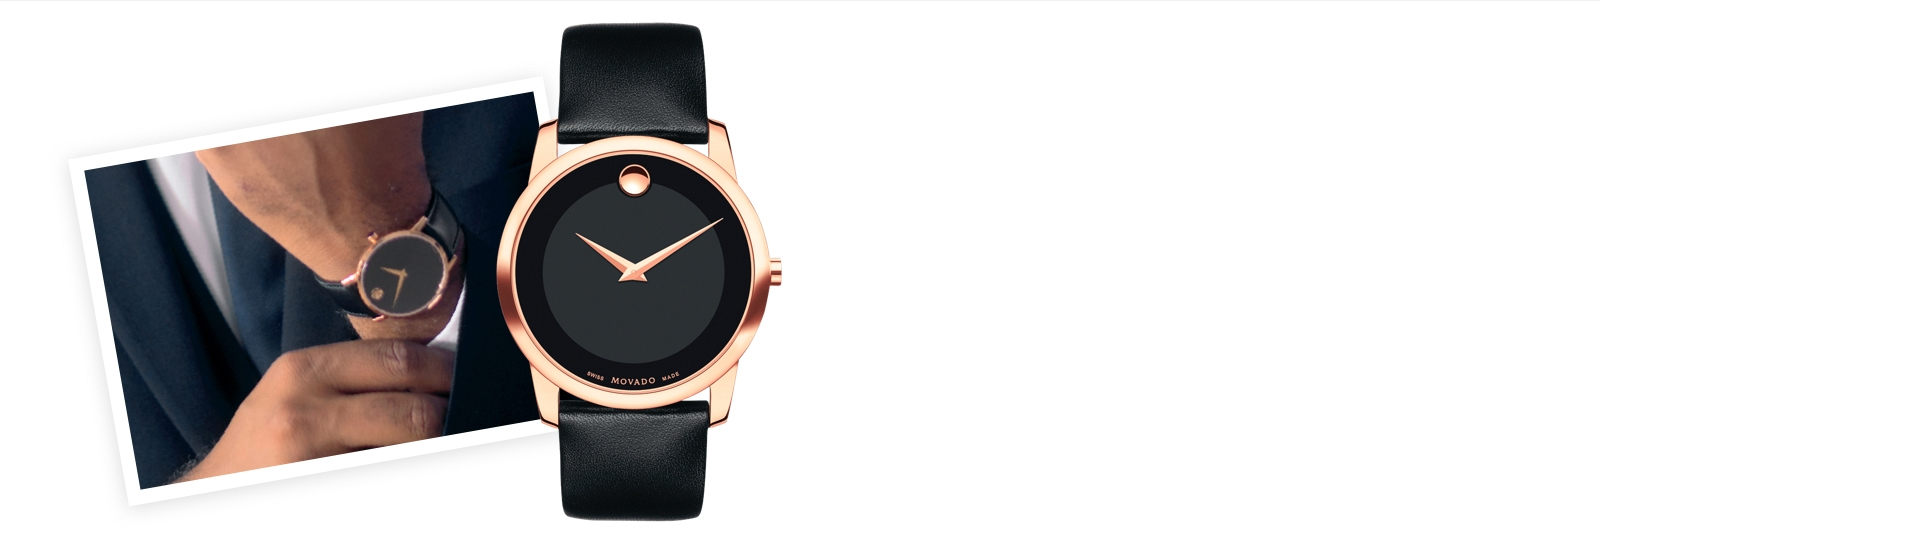 Man wearing a minimalist black and rose gold Movado watch. Shop watches for men at Jared.